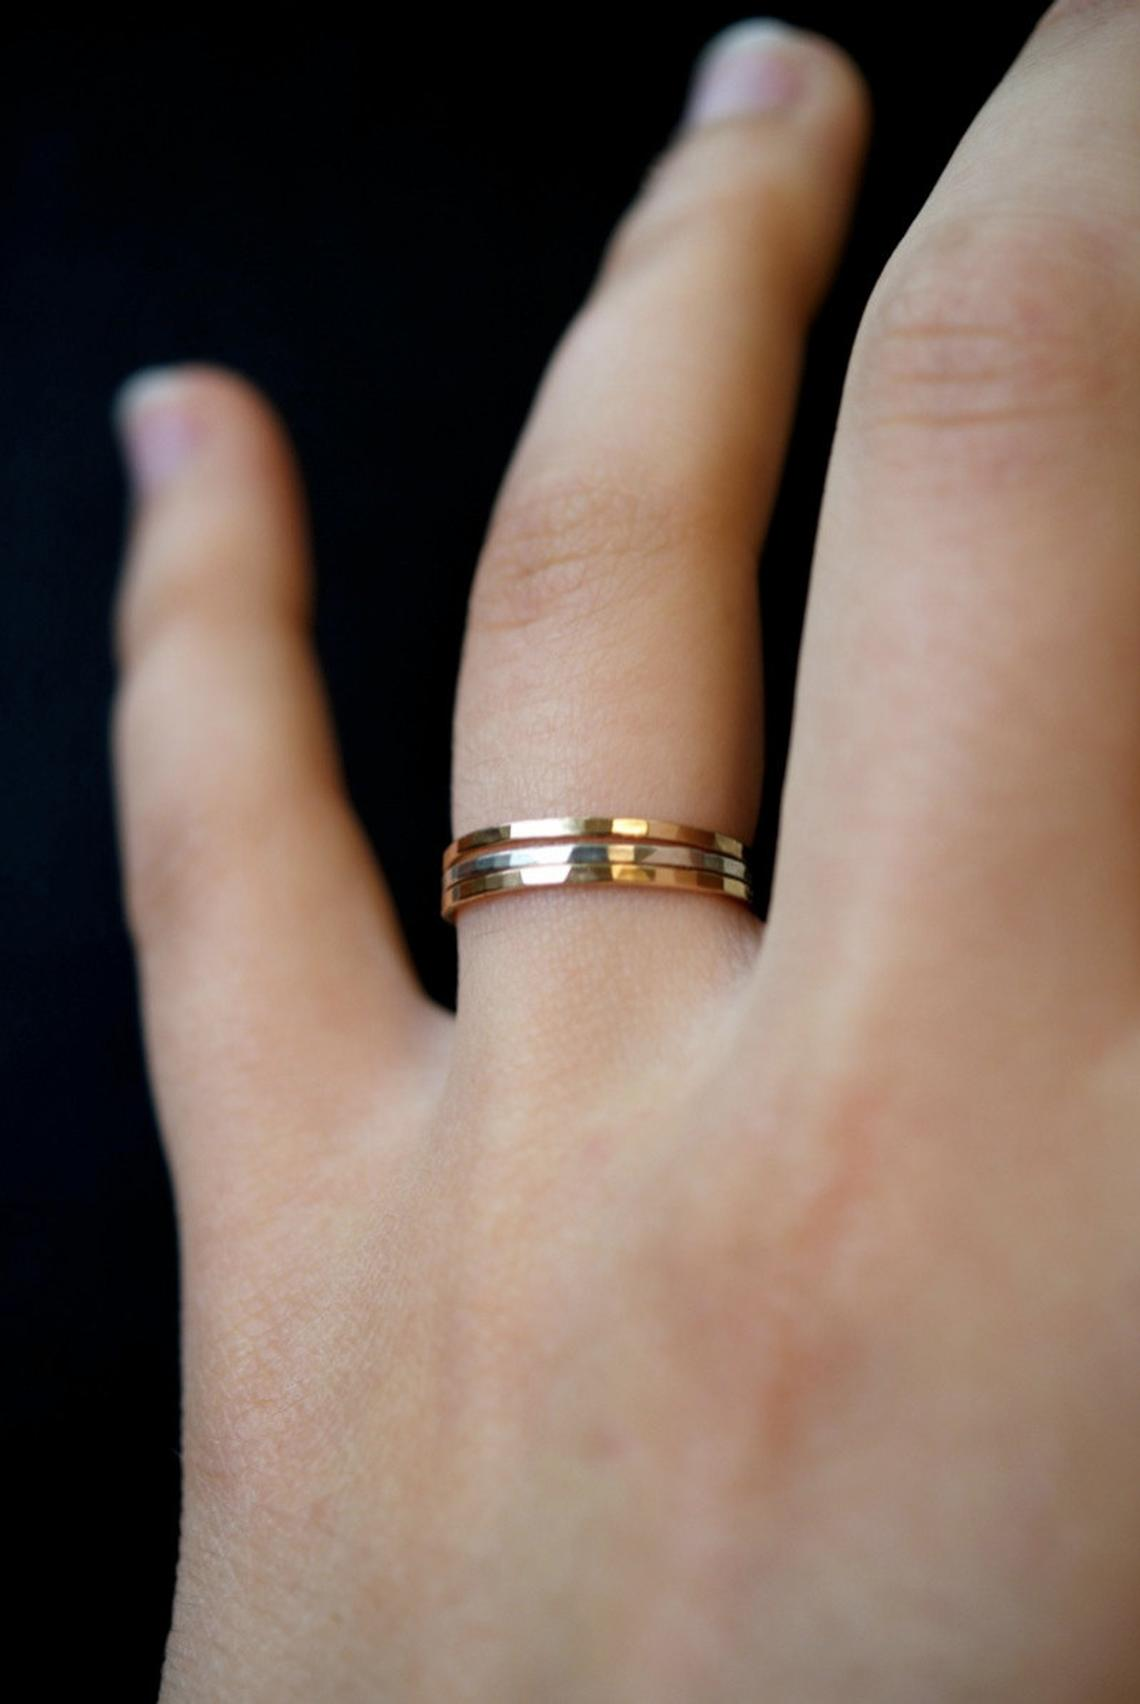 Sterling Silver/&Gold Filled Ring Set|Set of 3 Rings|Mixed Metal Ring Set|Minimalist Rings|Gold Filled Rings|